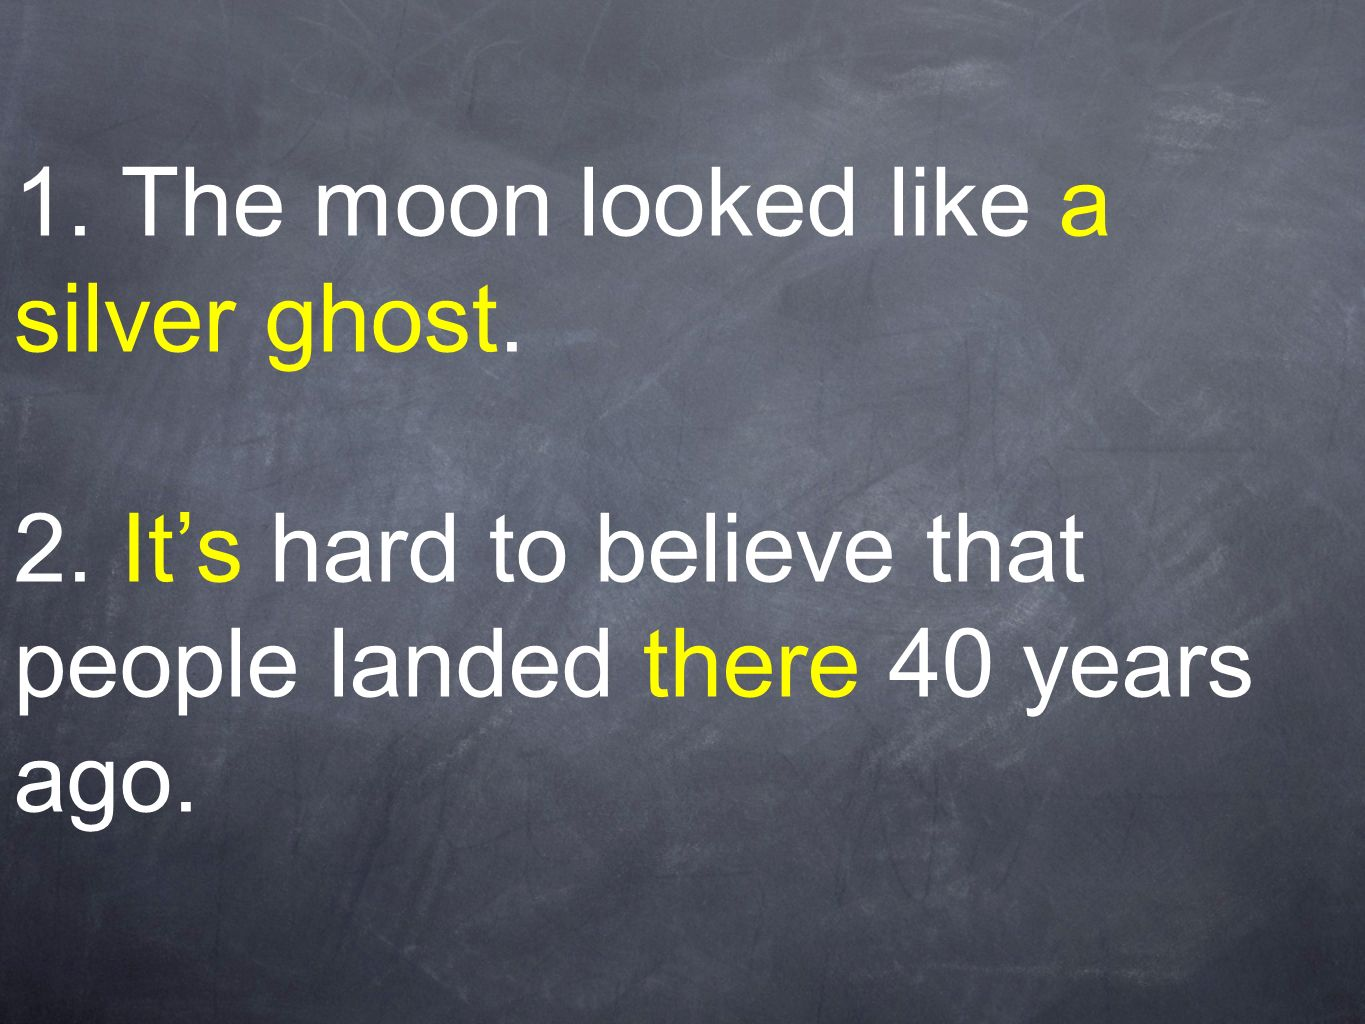 1. The moon looked like a silver ghost. 2. Its hard to believe that people landed there 40 years ago.